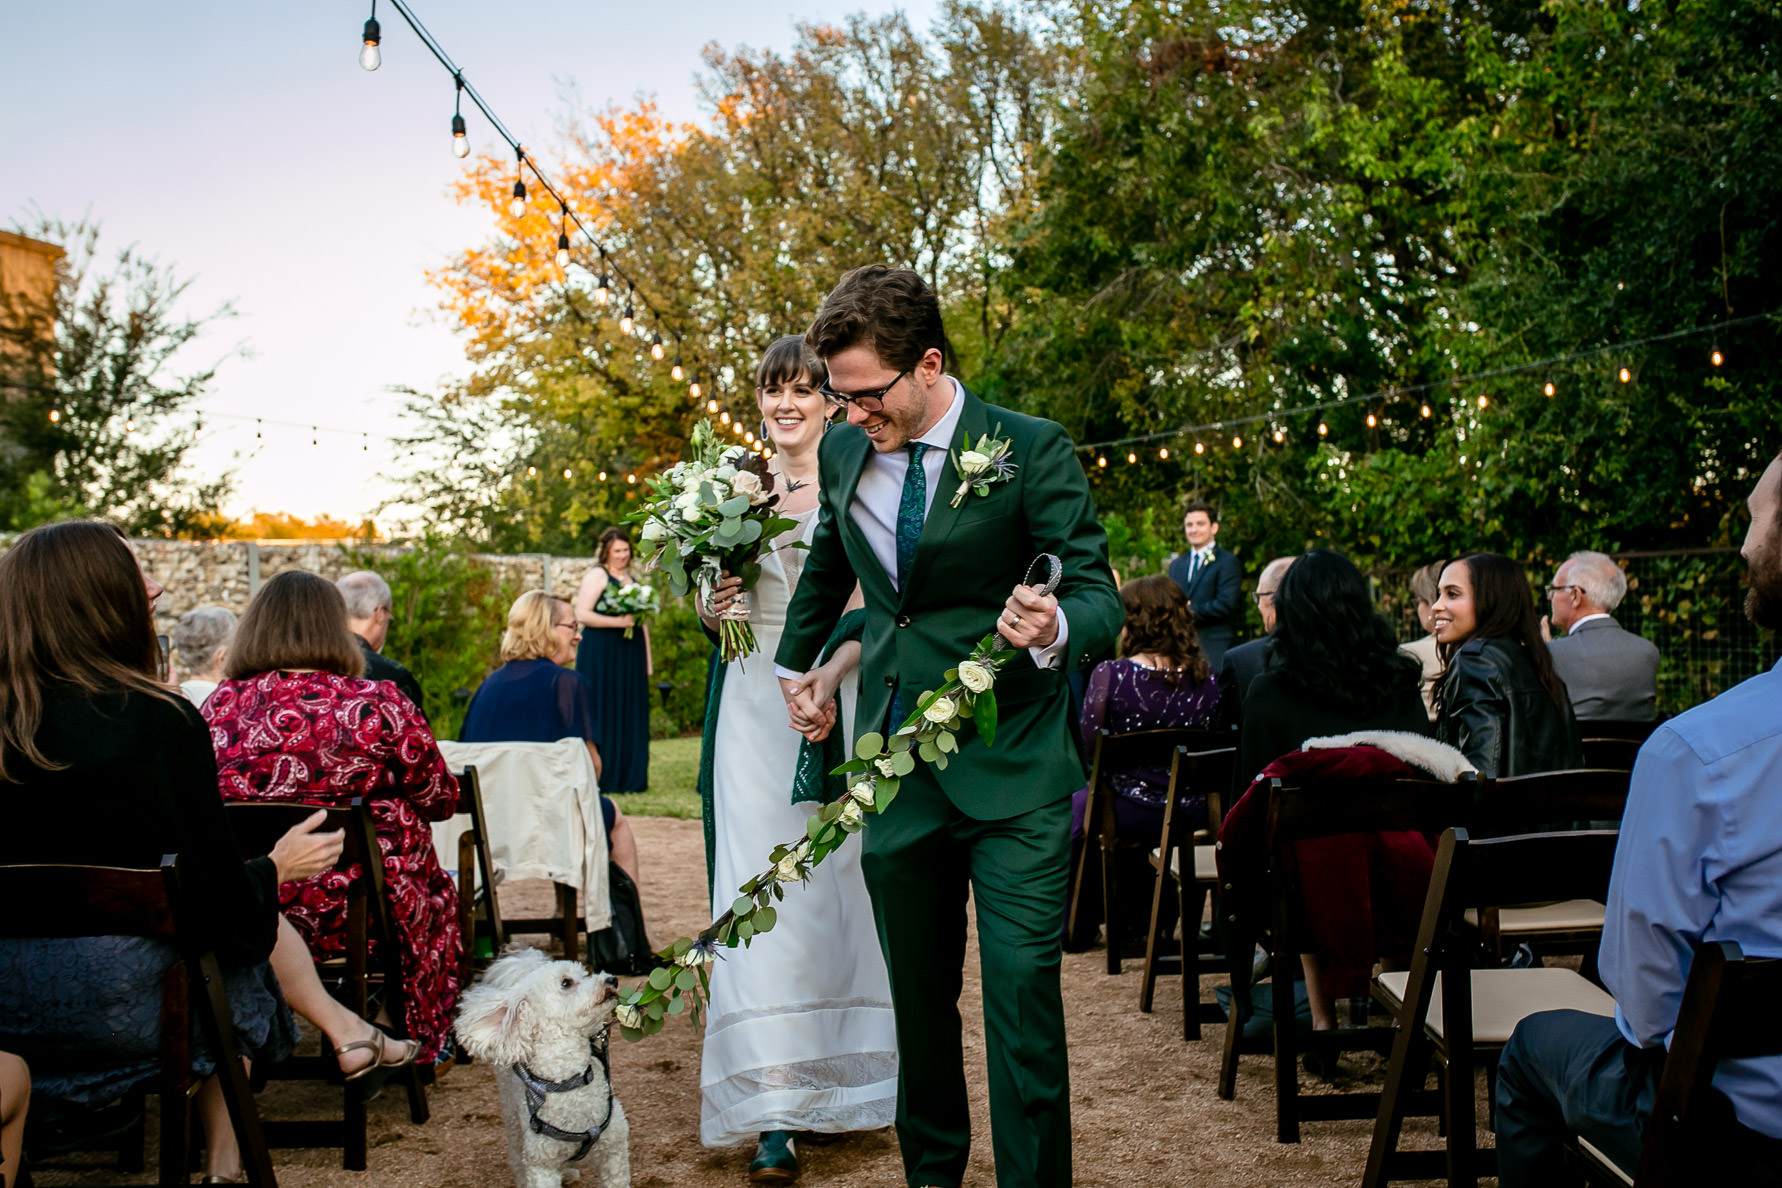 a bride and groom walk down the aisle with their dog